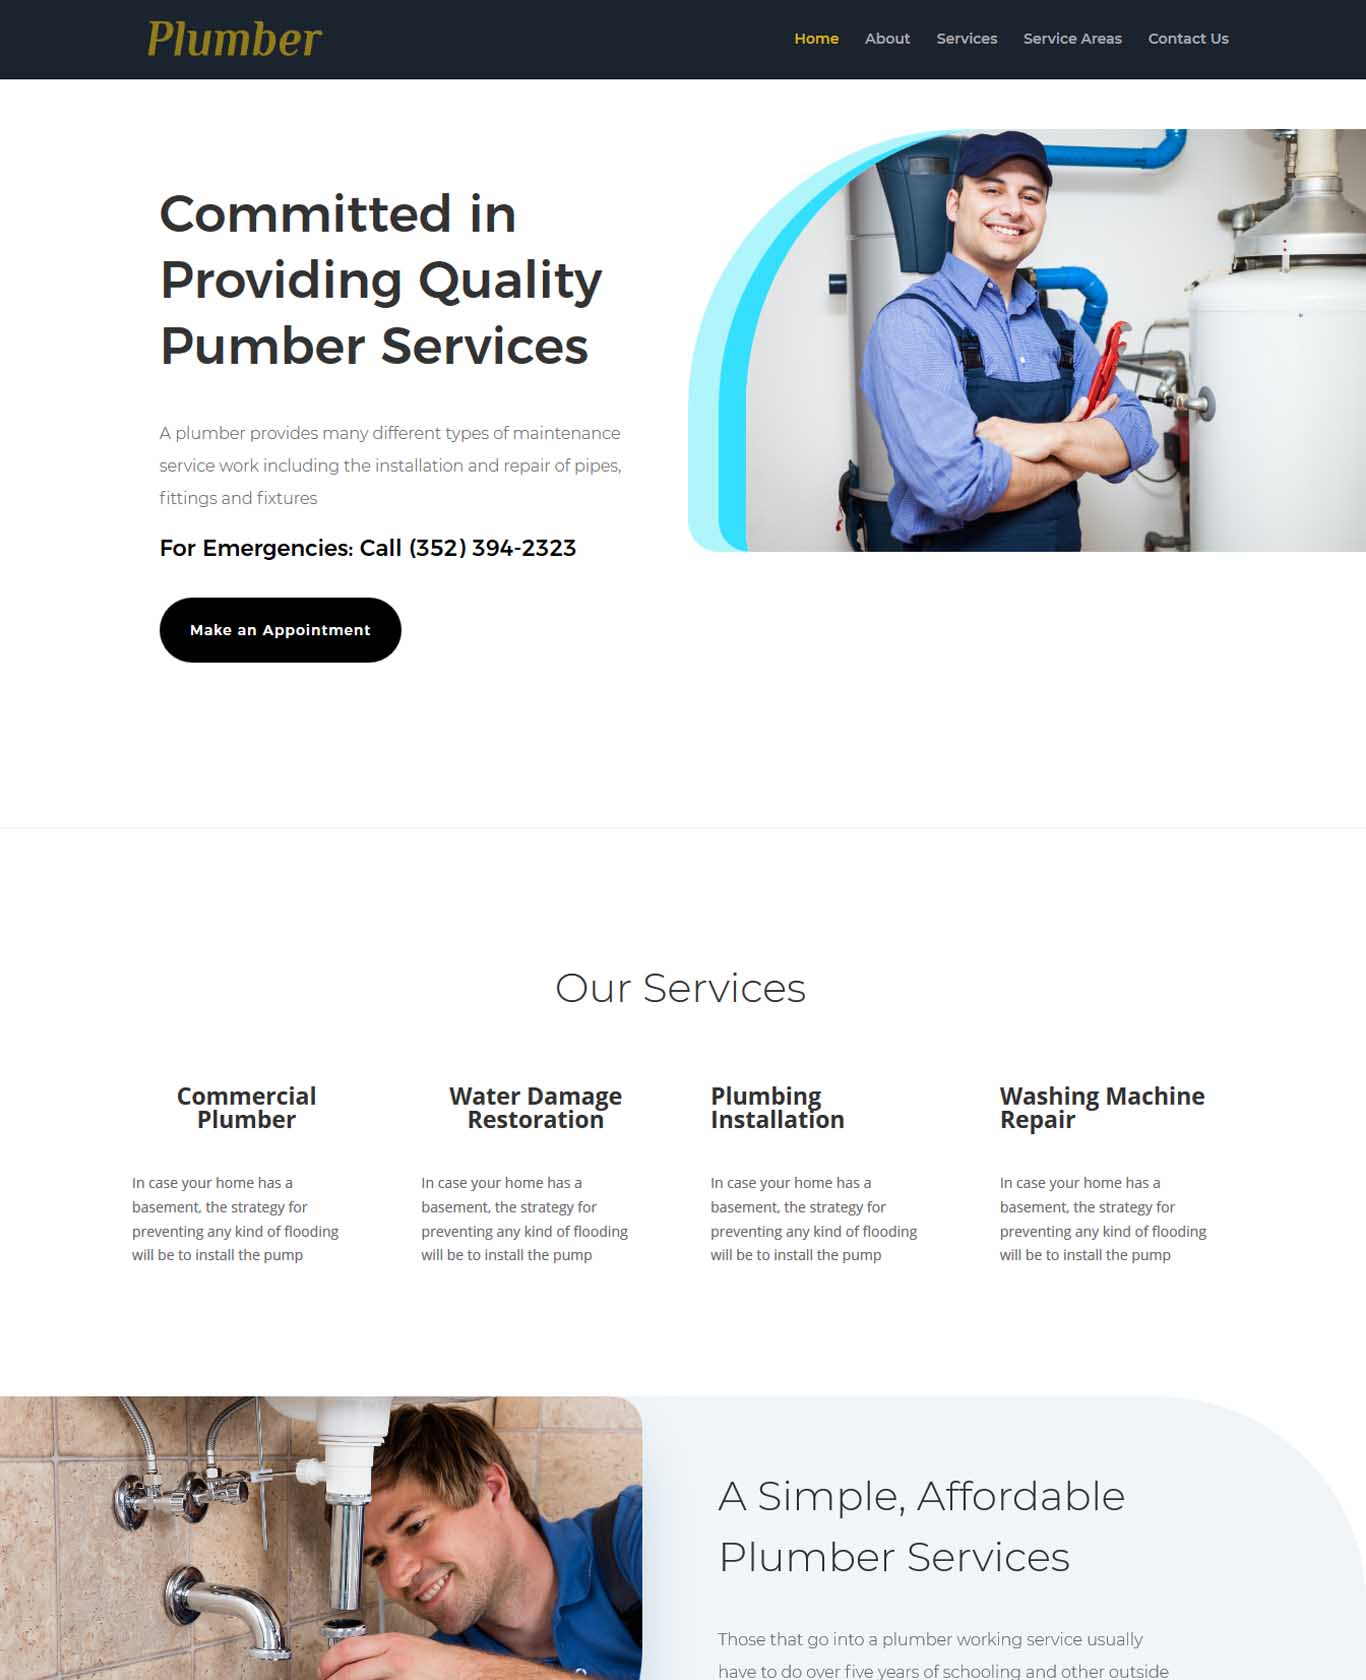 Plumber Website Sample Design 1